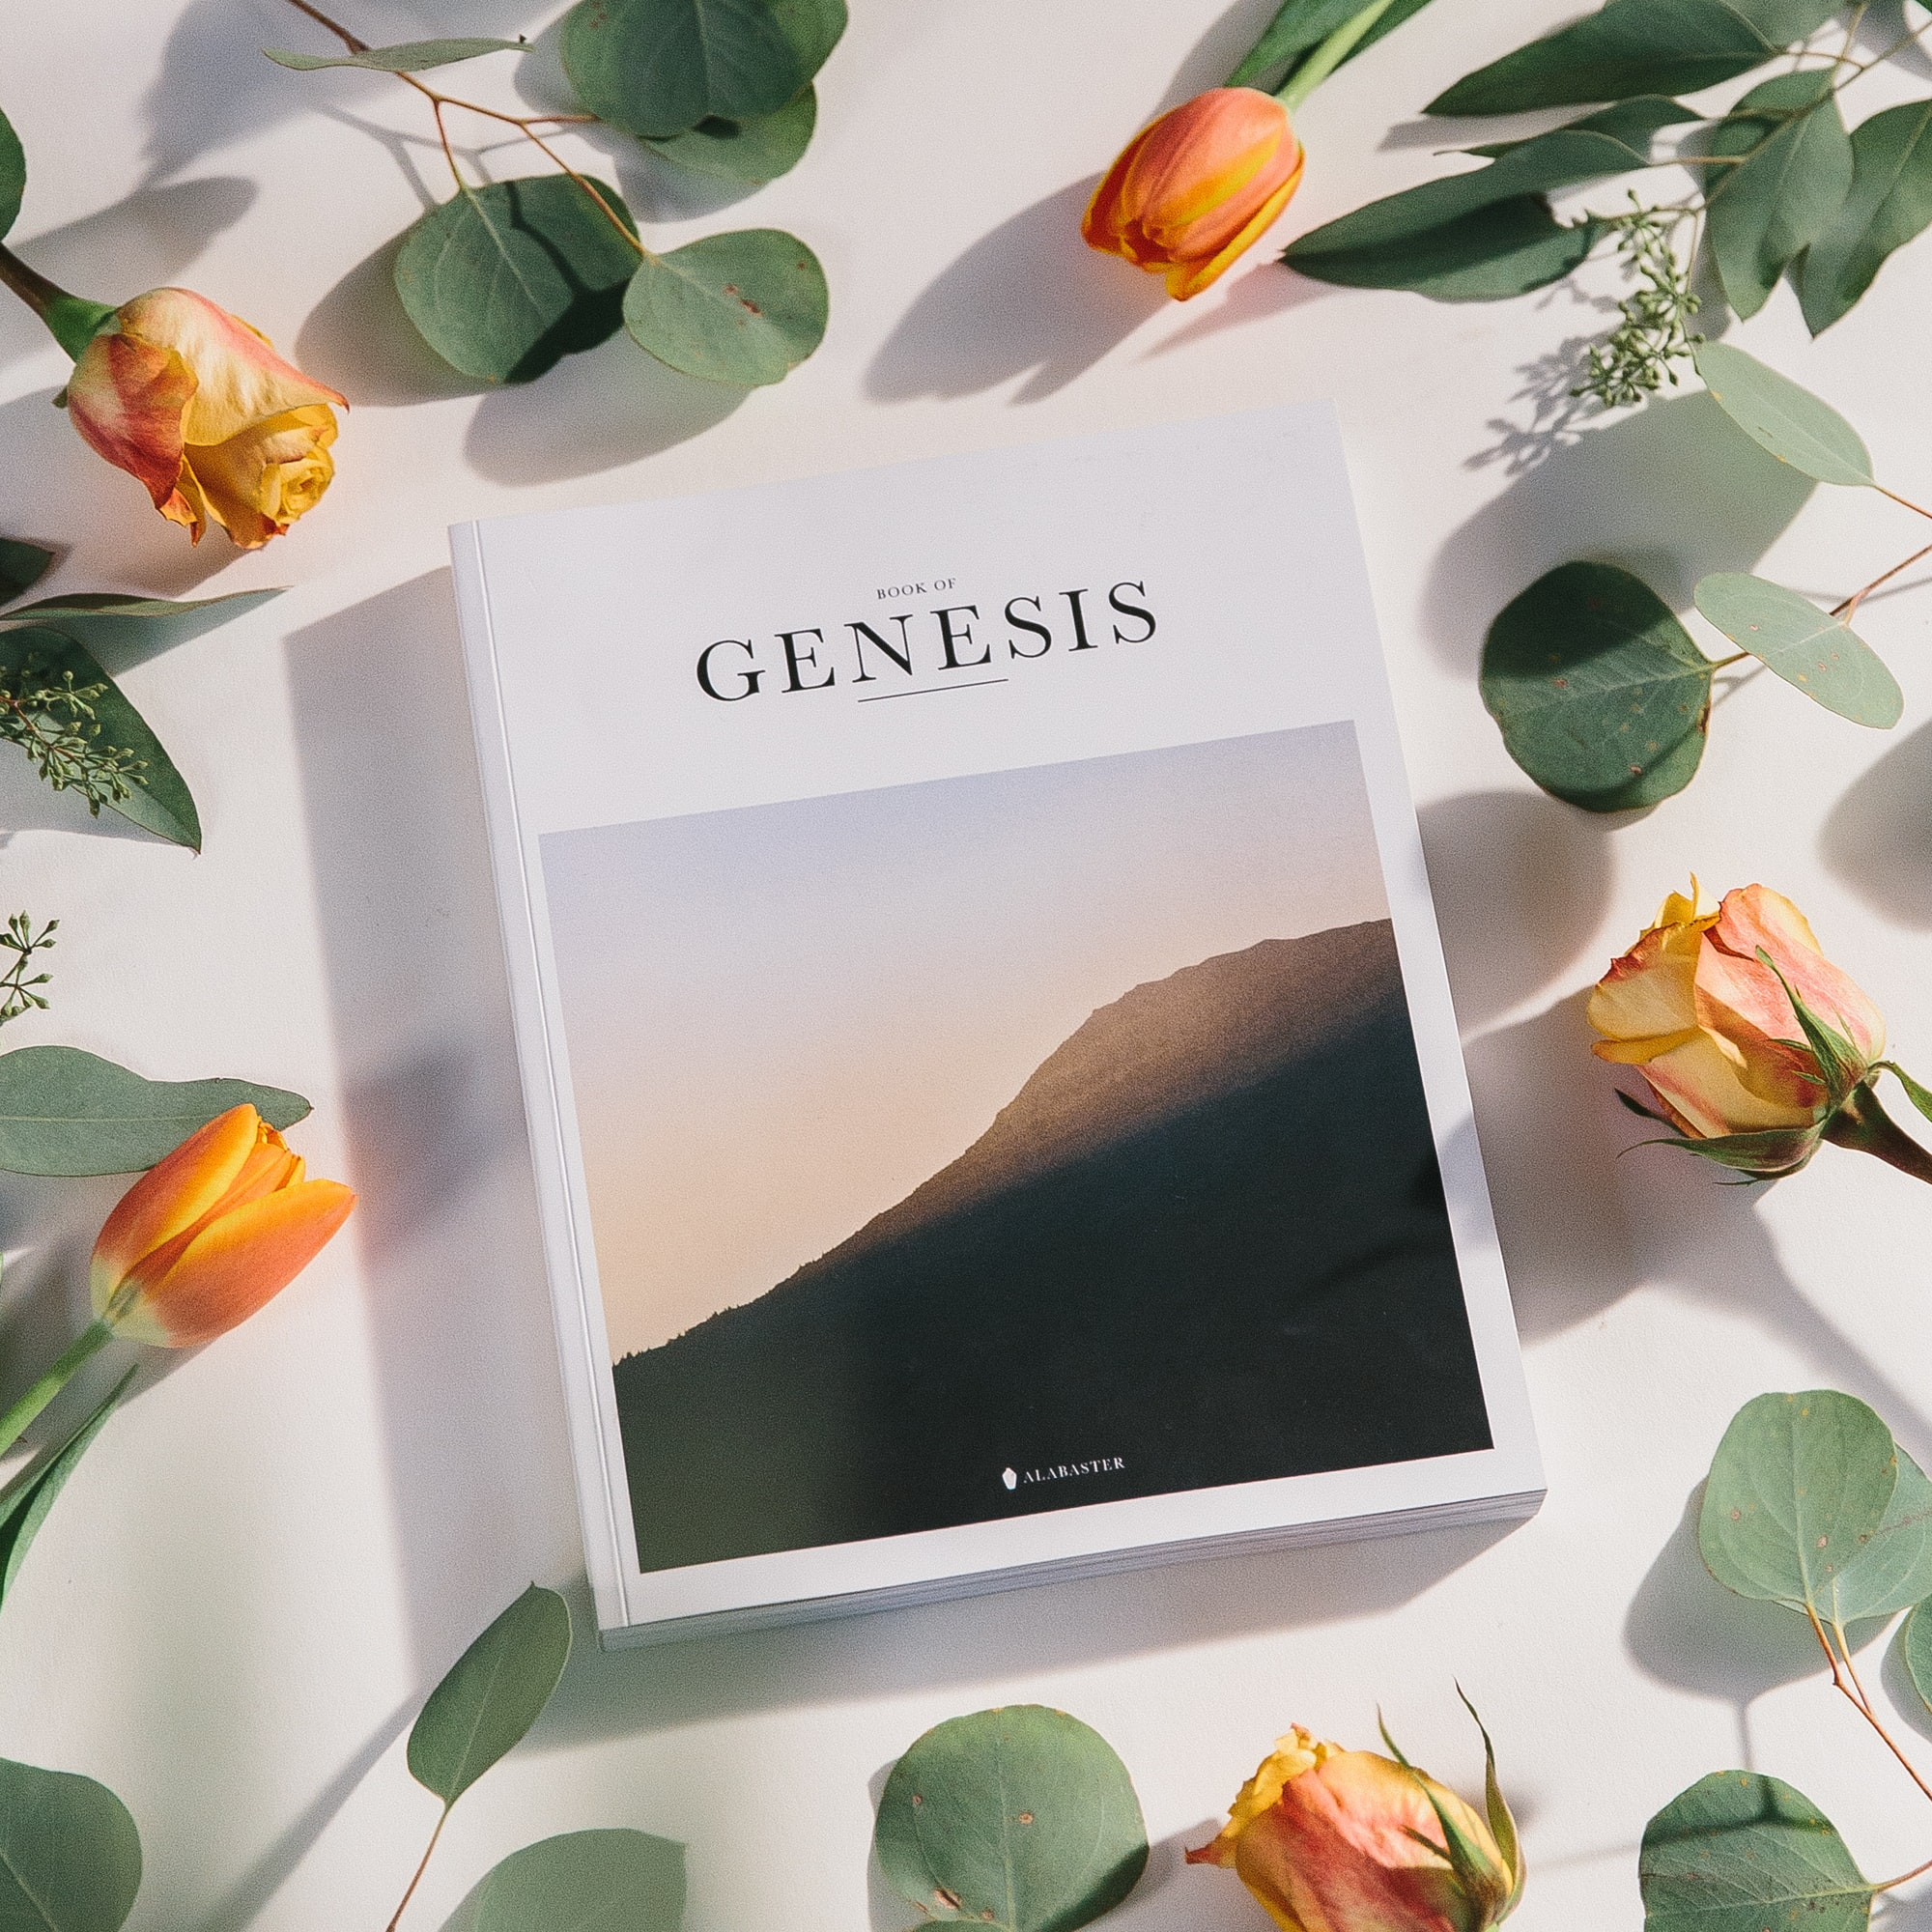 Book of Genesis, Bible with orange roses and leaves on white background table